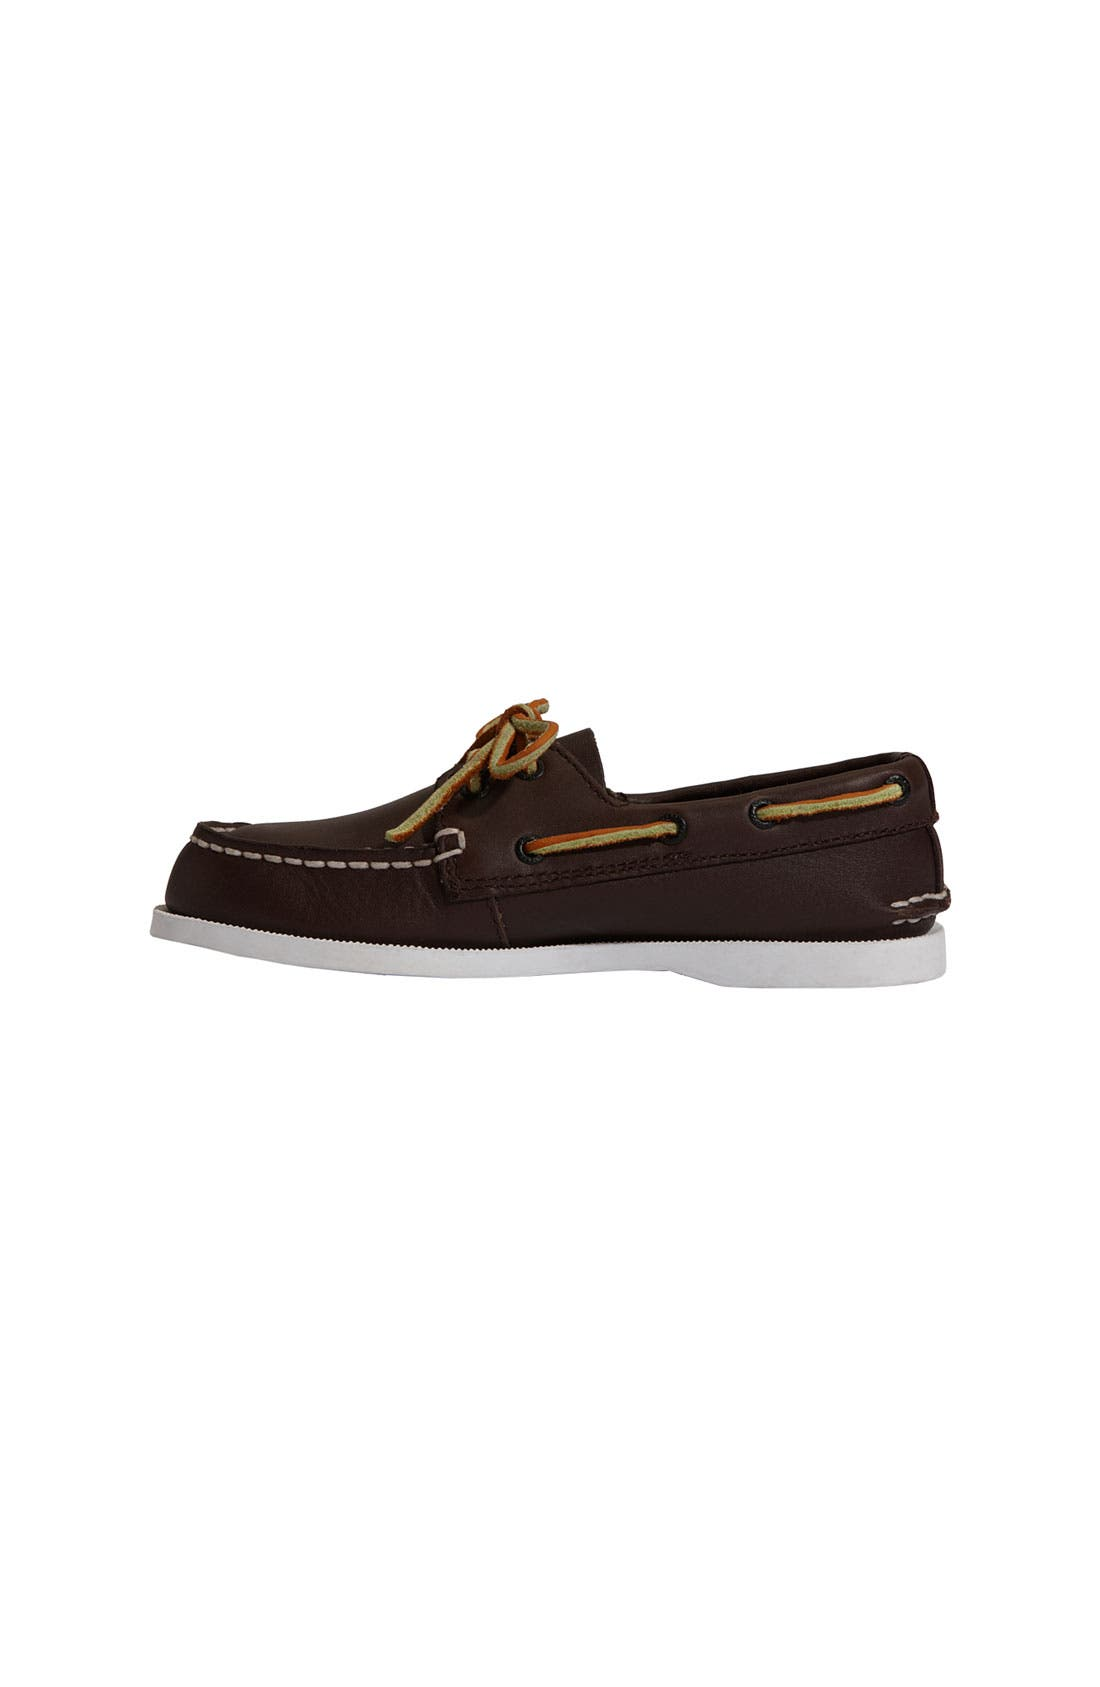 SPERRY KIDS, 'Authentic Original' Boat Shoe, Alternate thumbnail 8, color, BROWN LEATHER